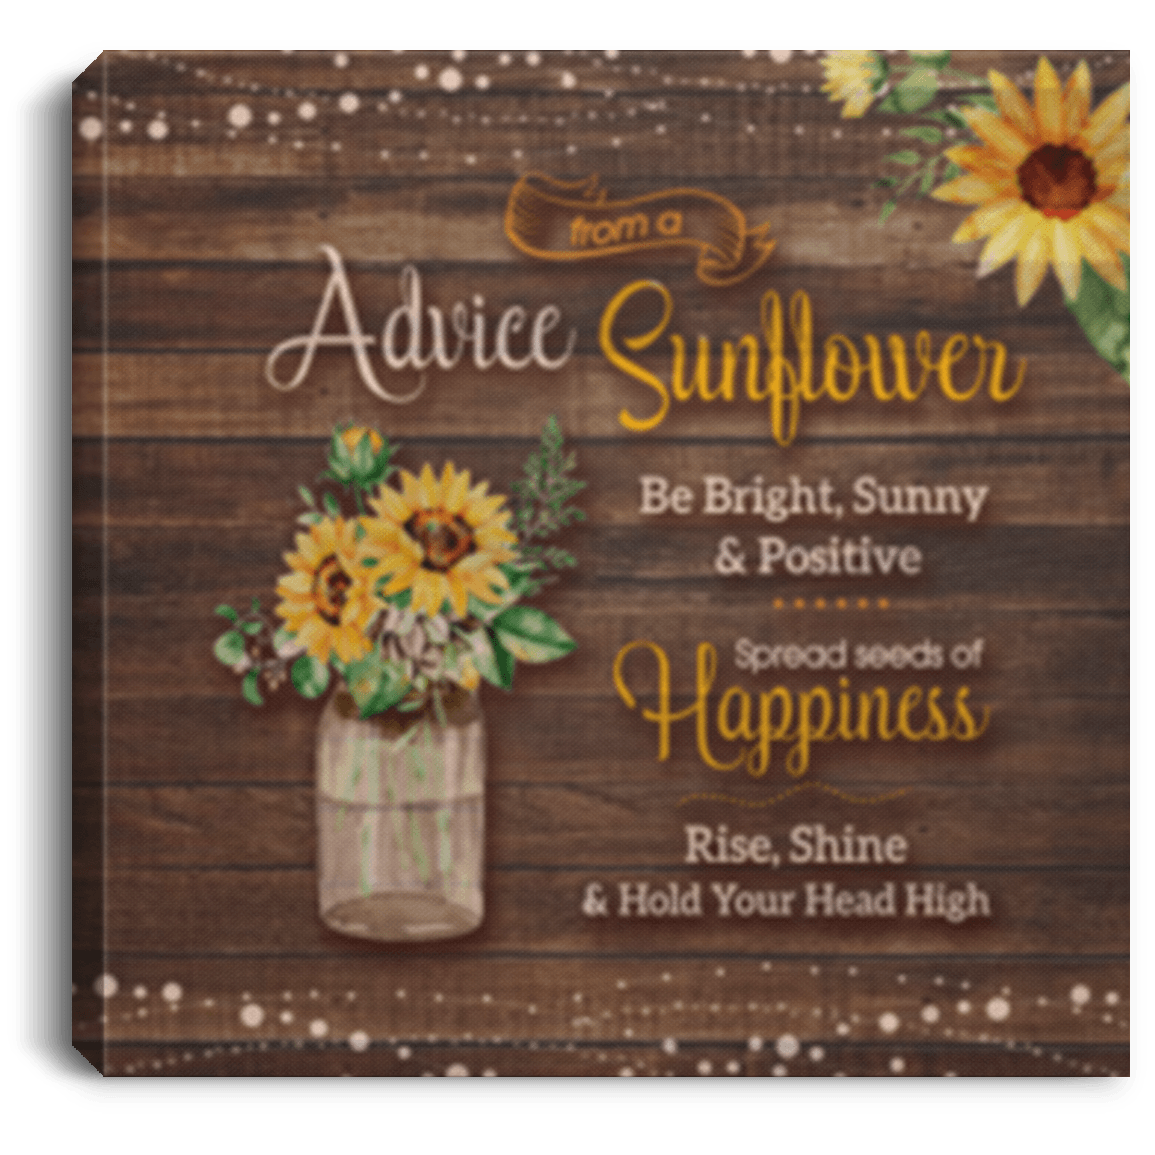 Advice-From A Sunflower Be Bright Sunny Positive Gallery Wrapped Framed  Canvas Prints - Unframed Poster